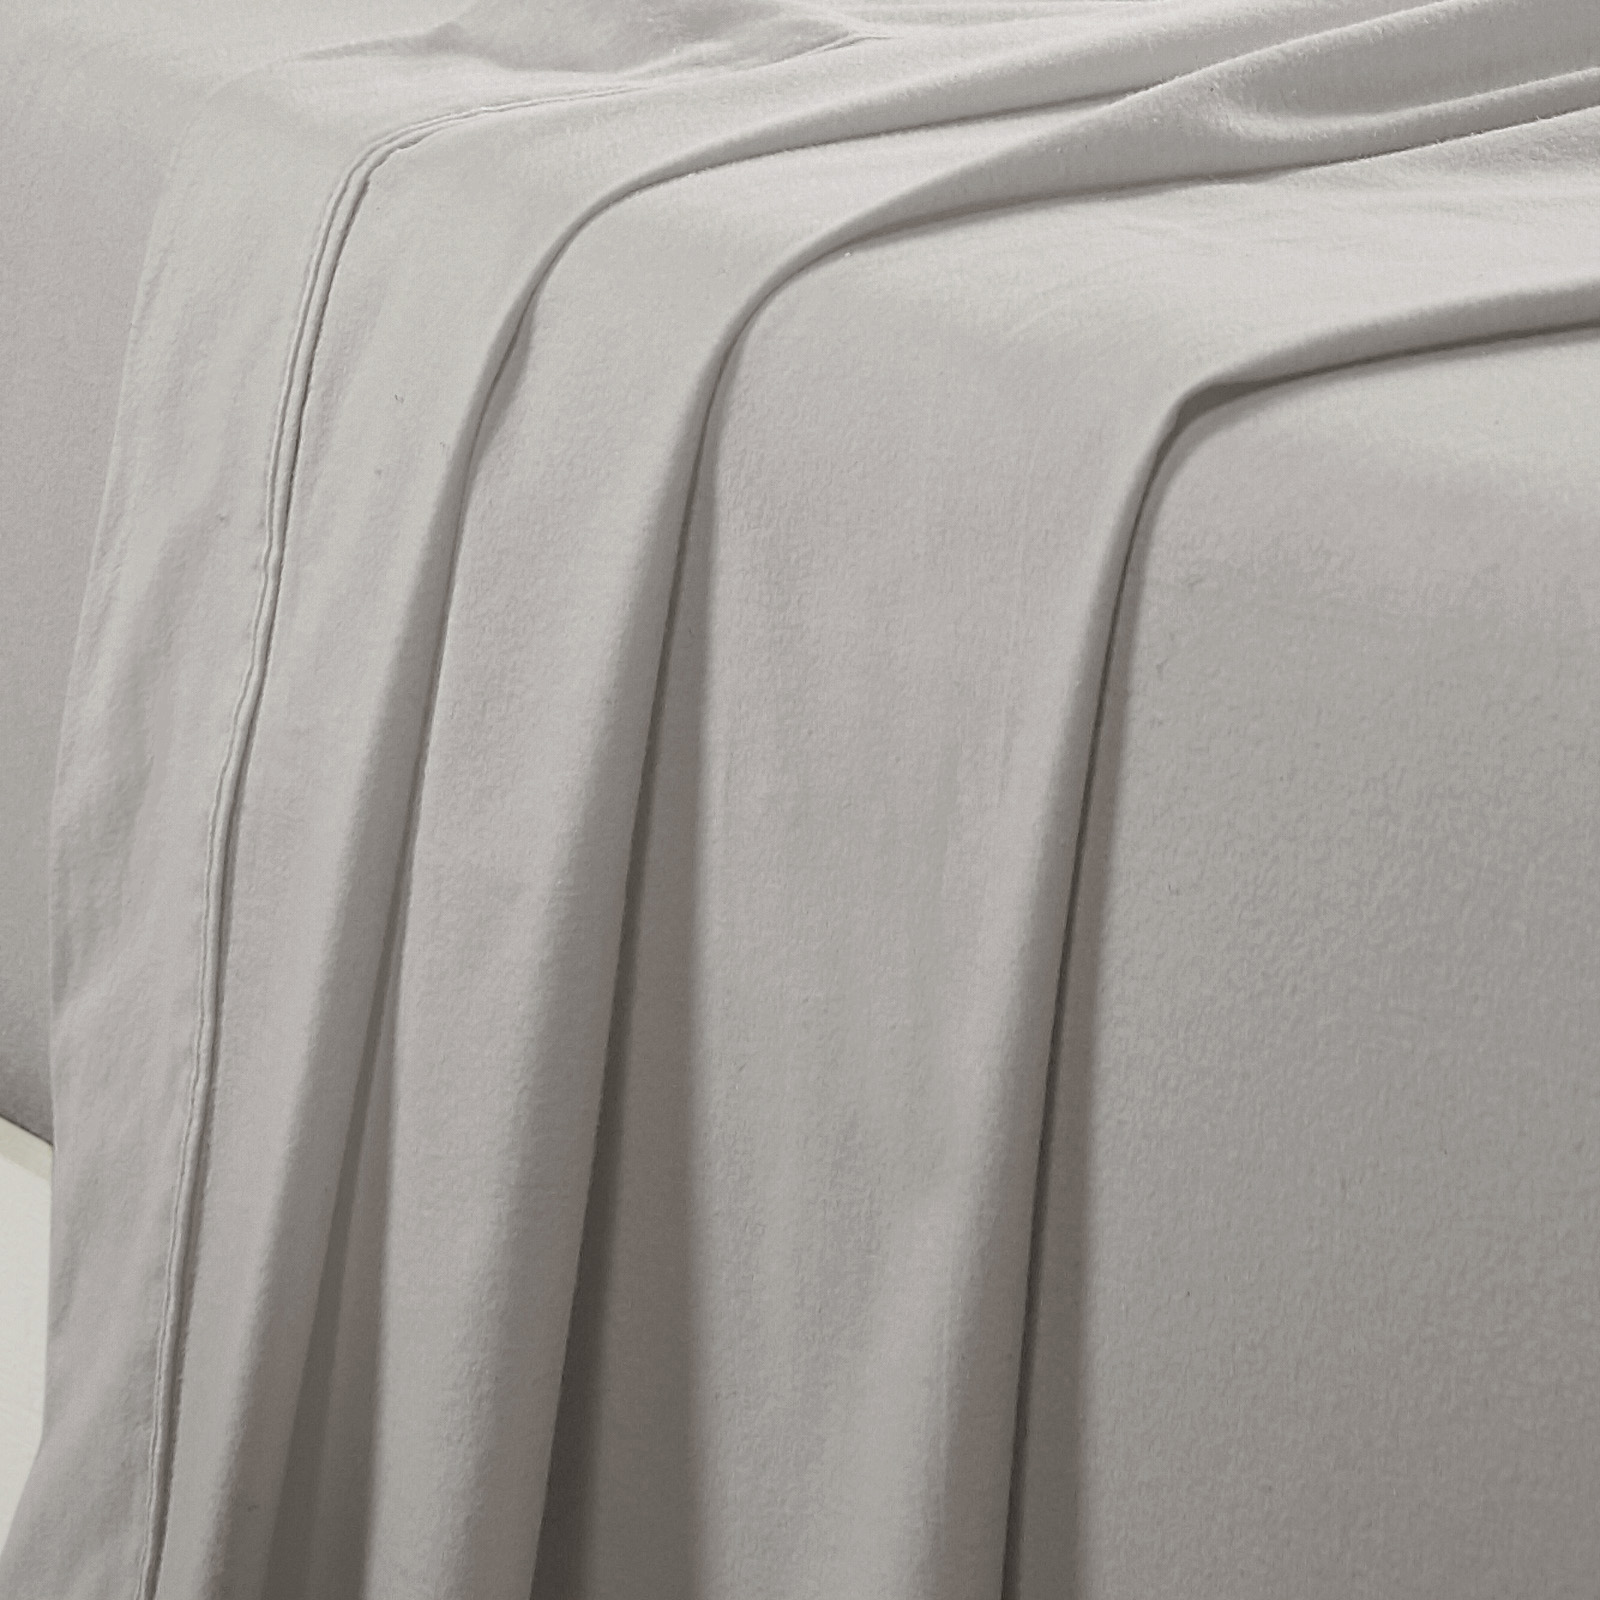 Flannel Sheet Set Egyptian Cotton 175 GSM Brushed - Colour Graphite - From $39.95